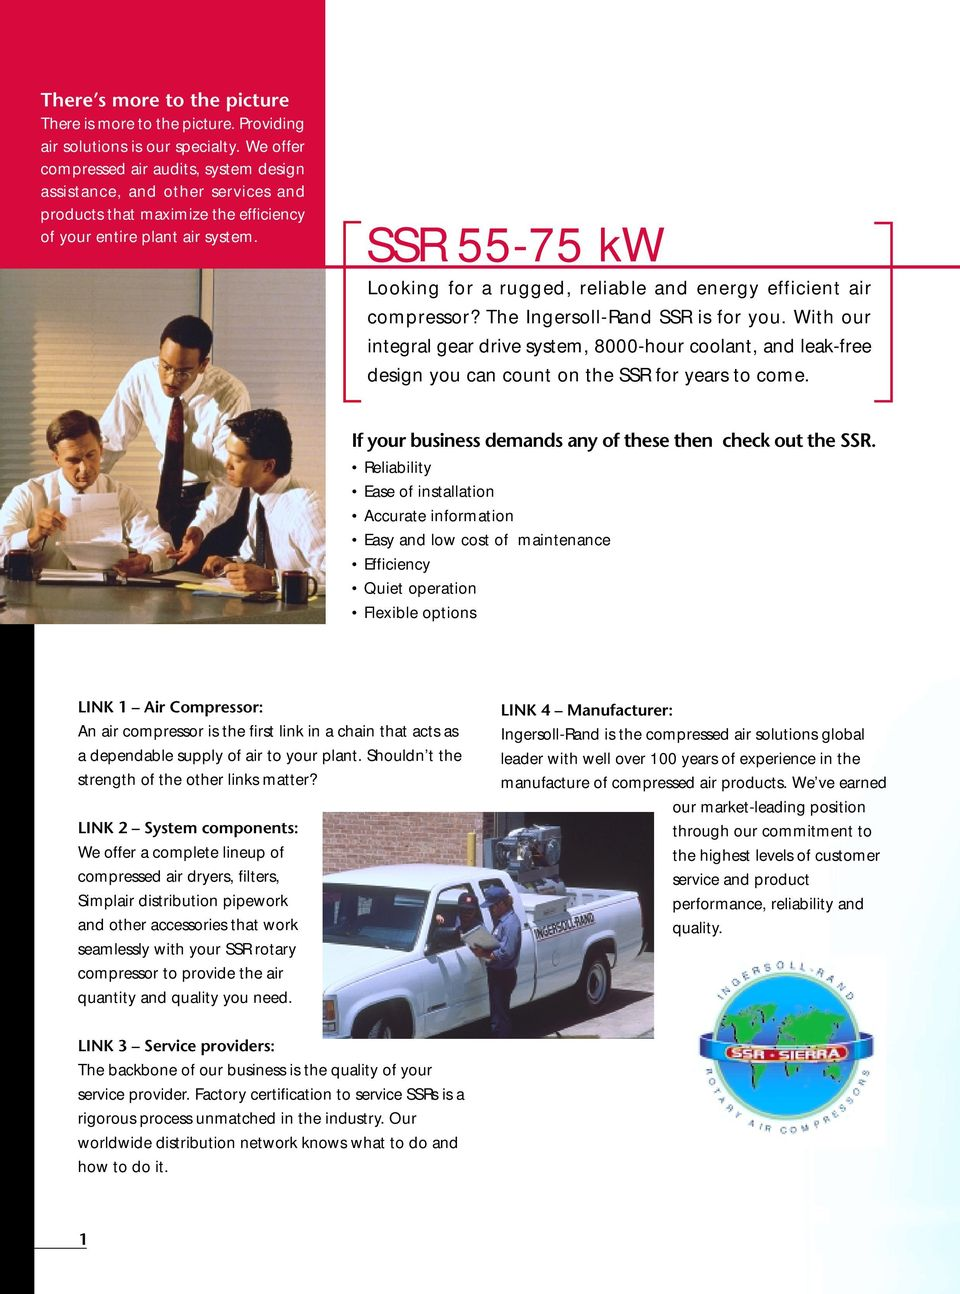 SSR 55-75 kw Looking for a rugged, reliable and energy efficient air compressor? The Ingersoll-Rand SSR is for you.